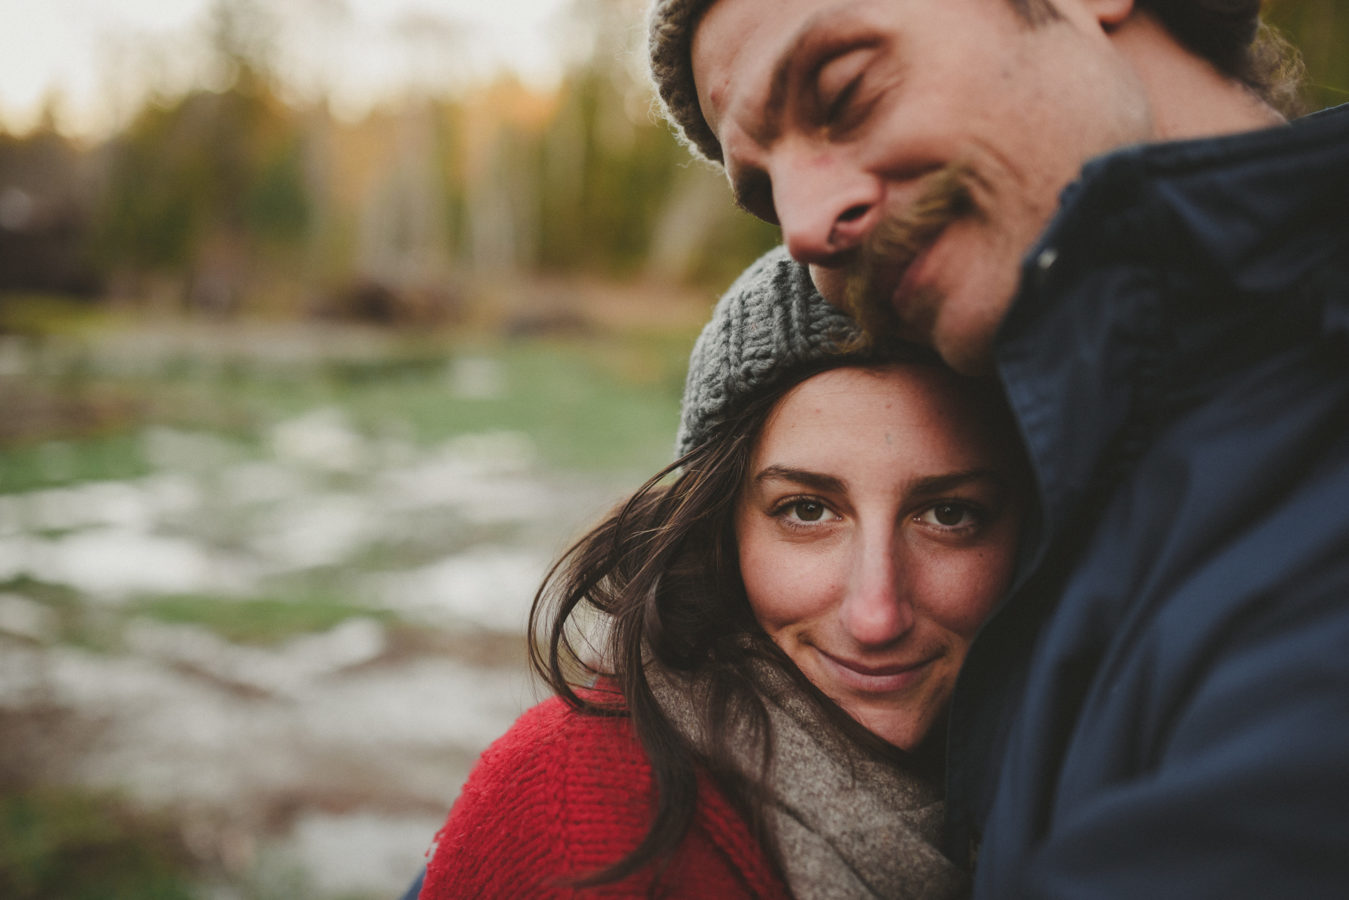 young woman snuggled into her man smiling at the camera